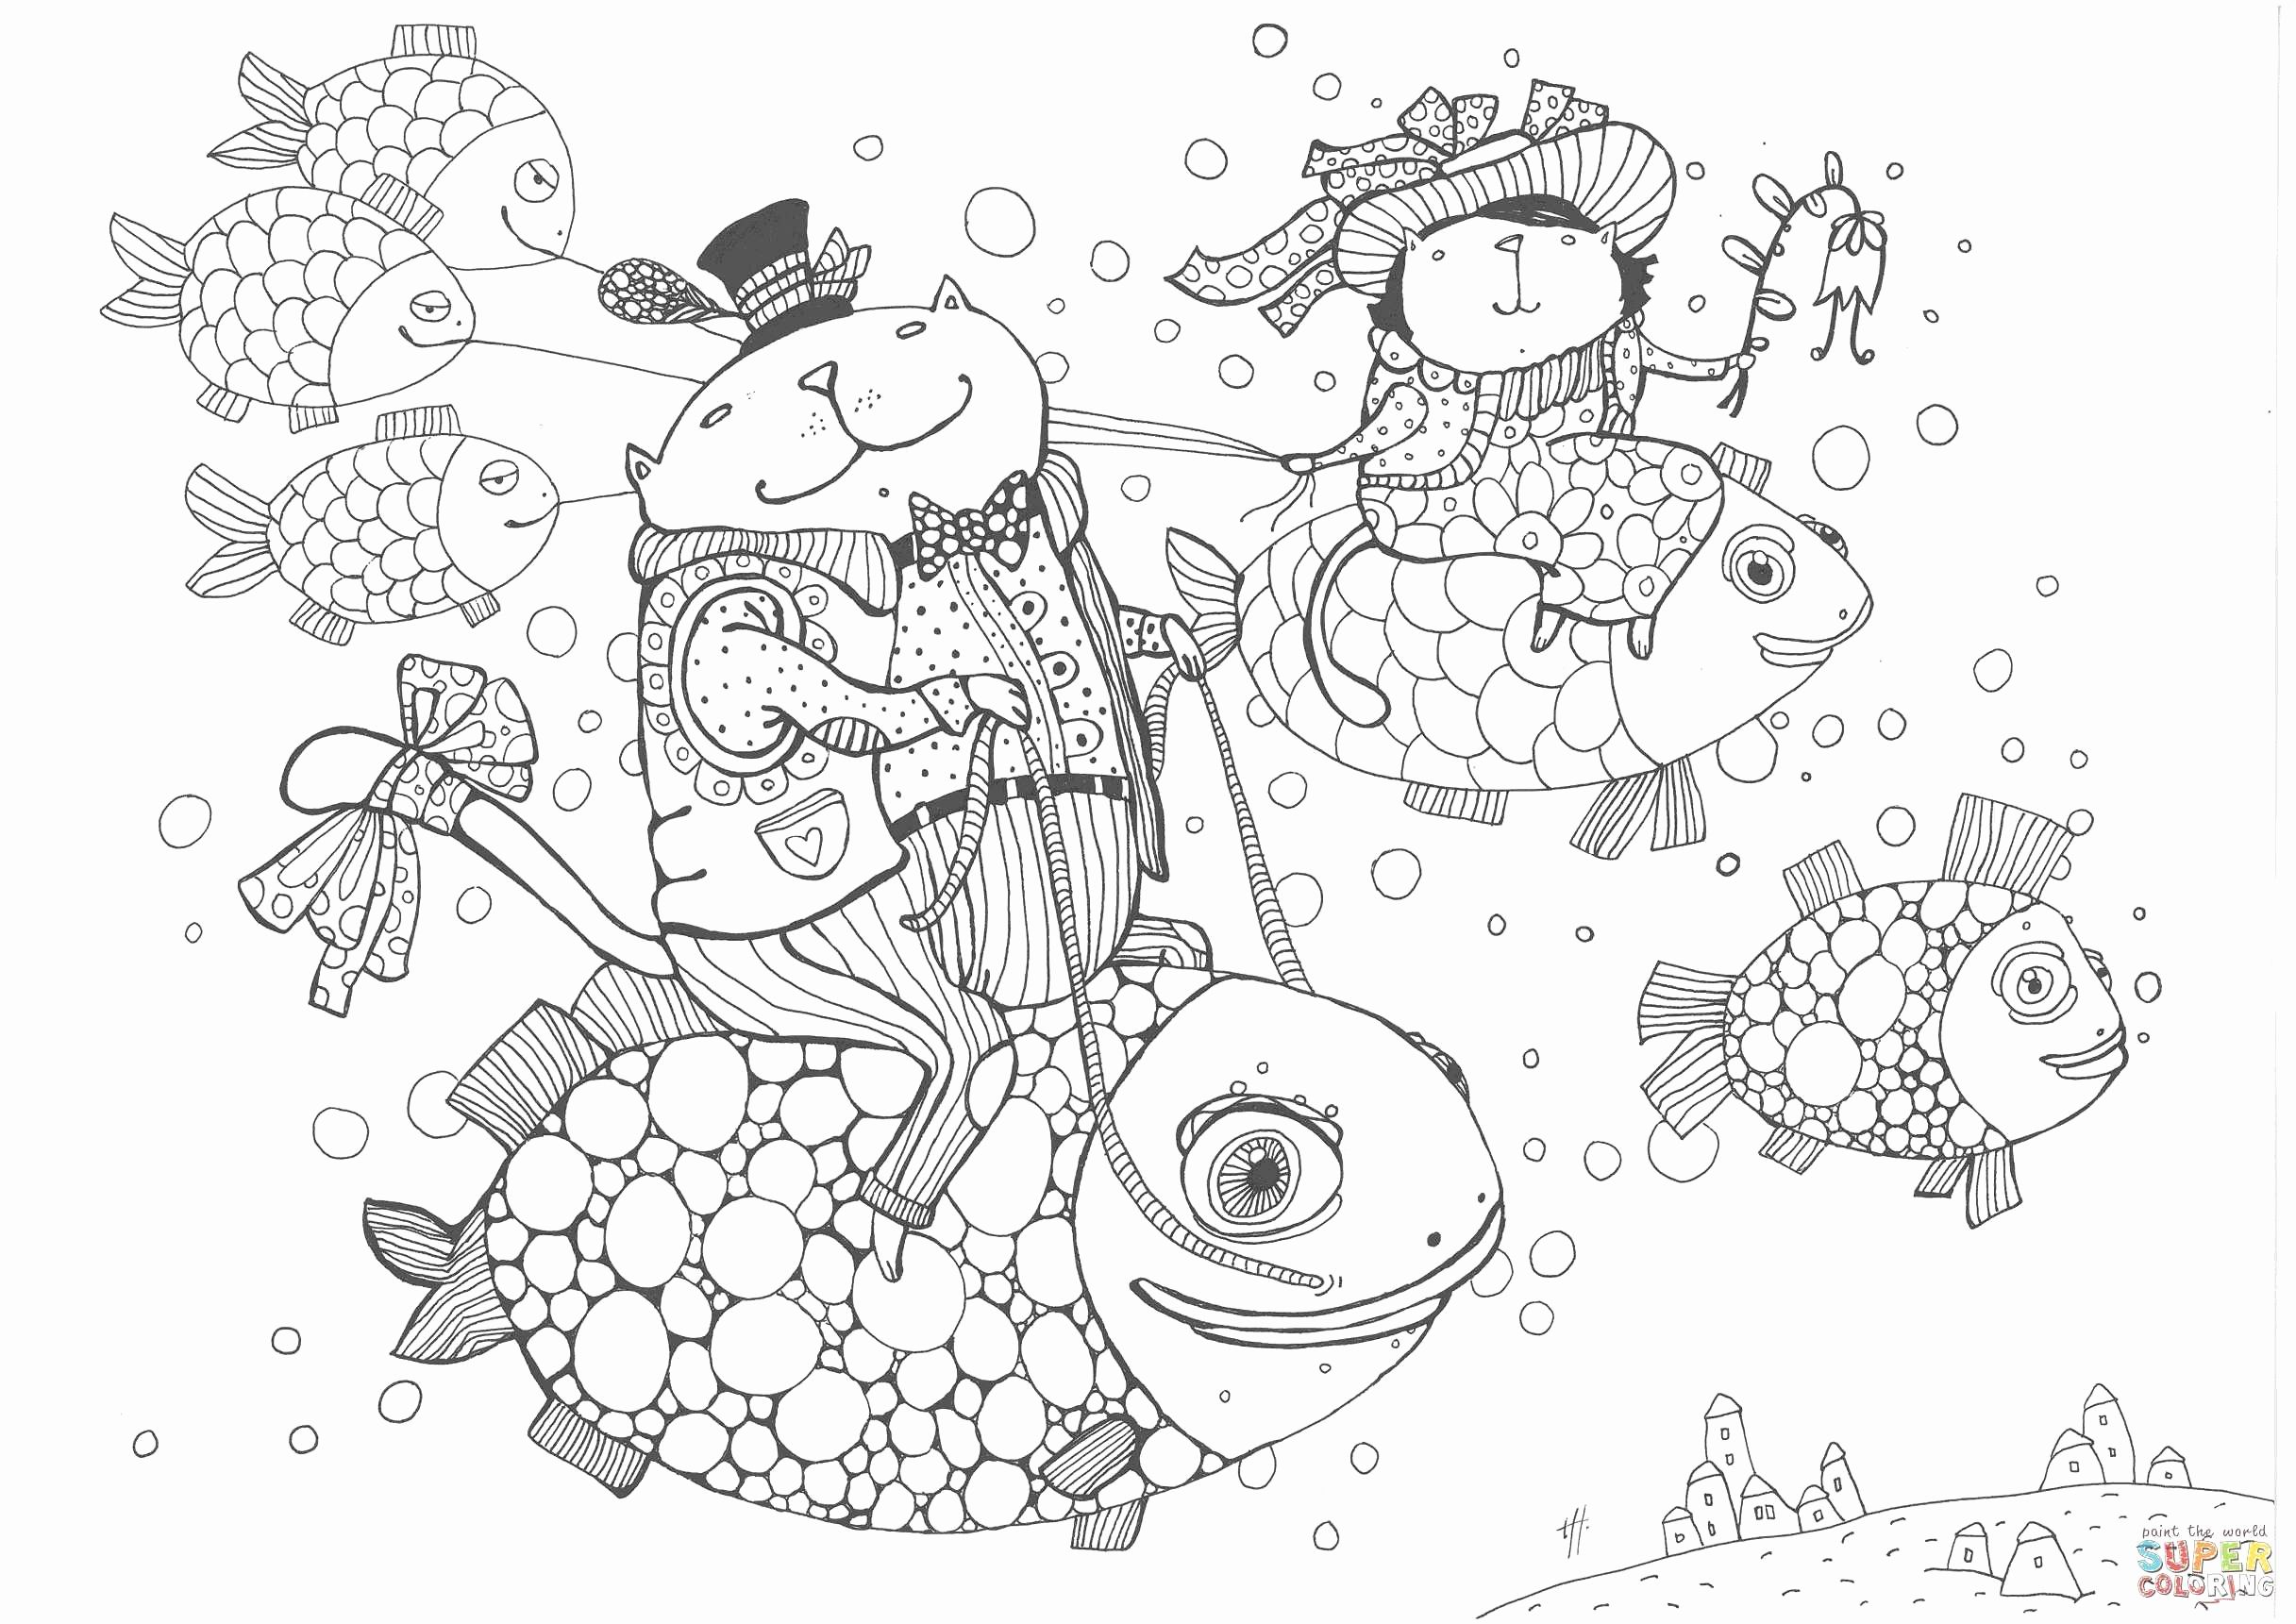 10 Crazy Hair Adult Coloring Pages People Coloring Pages Adult